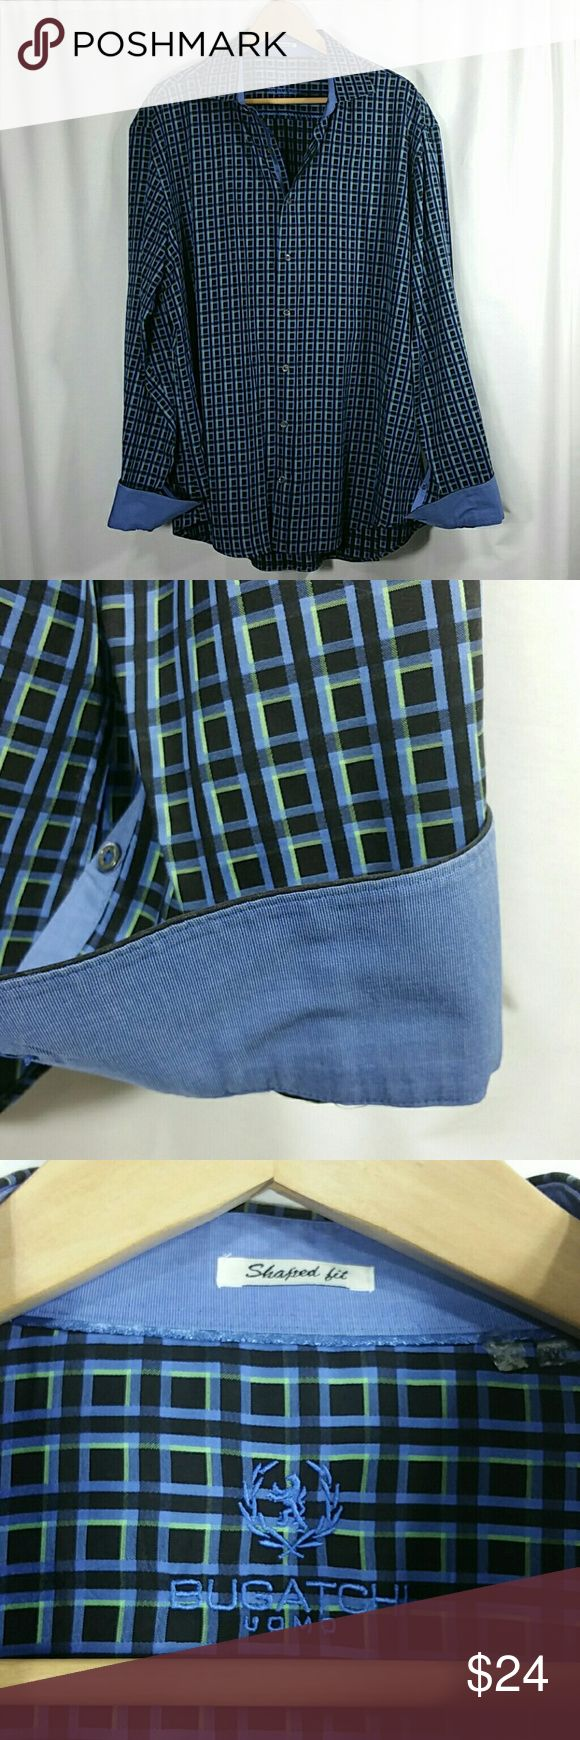 "Bugatchi Uomo 3XL Shirt w/Contrasting Trim In excellent pre-worn condition, 100% cotton with contrasting fabric on collar and cuffs.  Chest 27"" across and sleeves 27"" in length.  Shaped Fit. From a smoke-free home, no trades and no PayPal. Bundle more of these shirts and save! Bugatchi Shirts Dress Shirts"